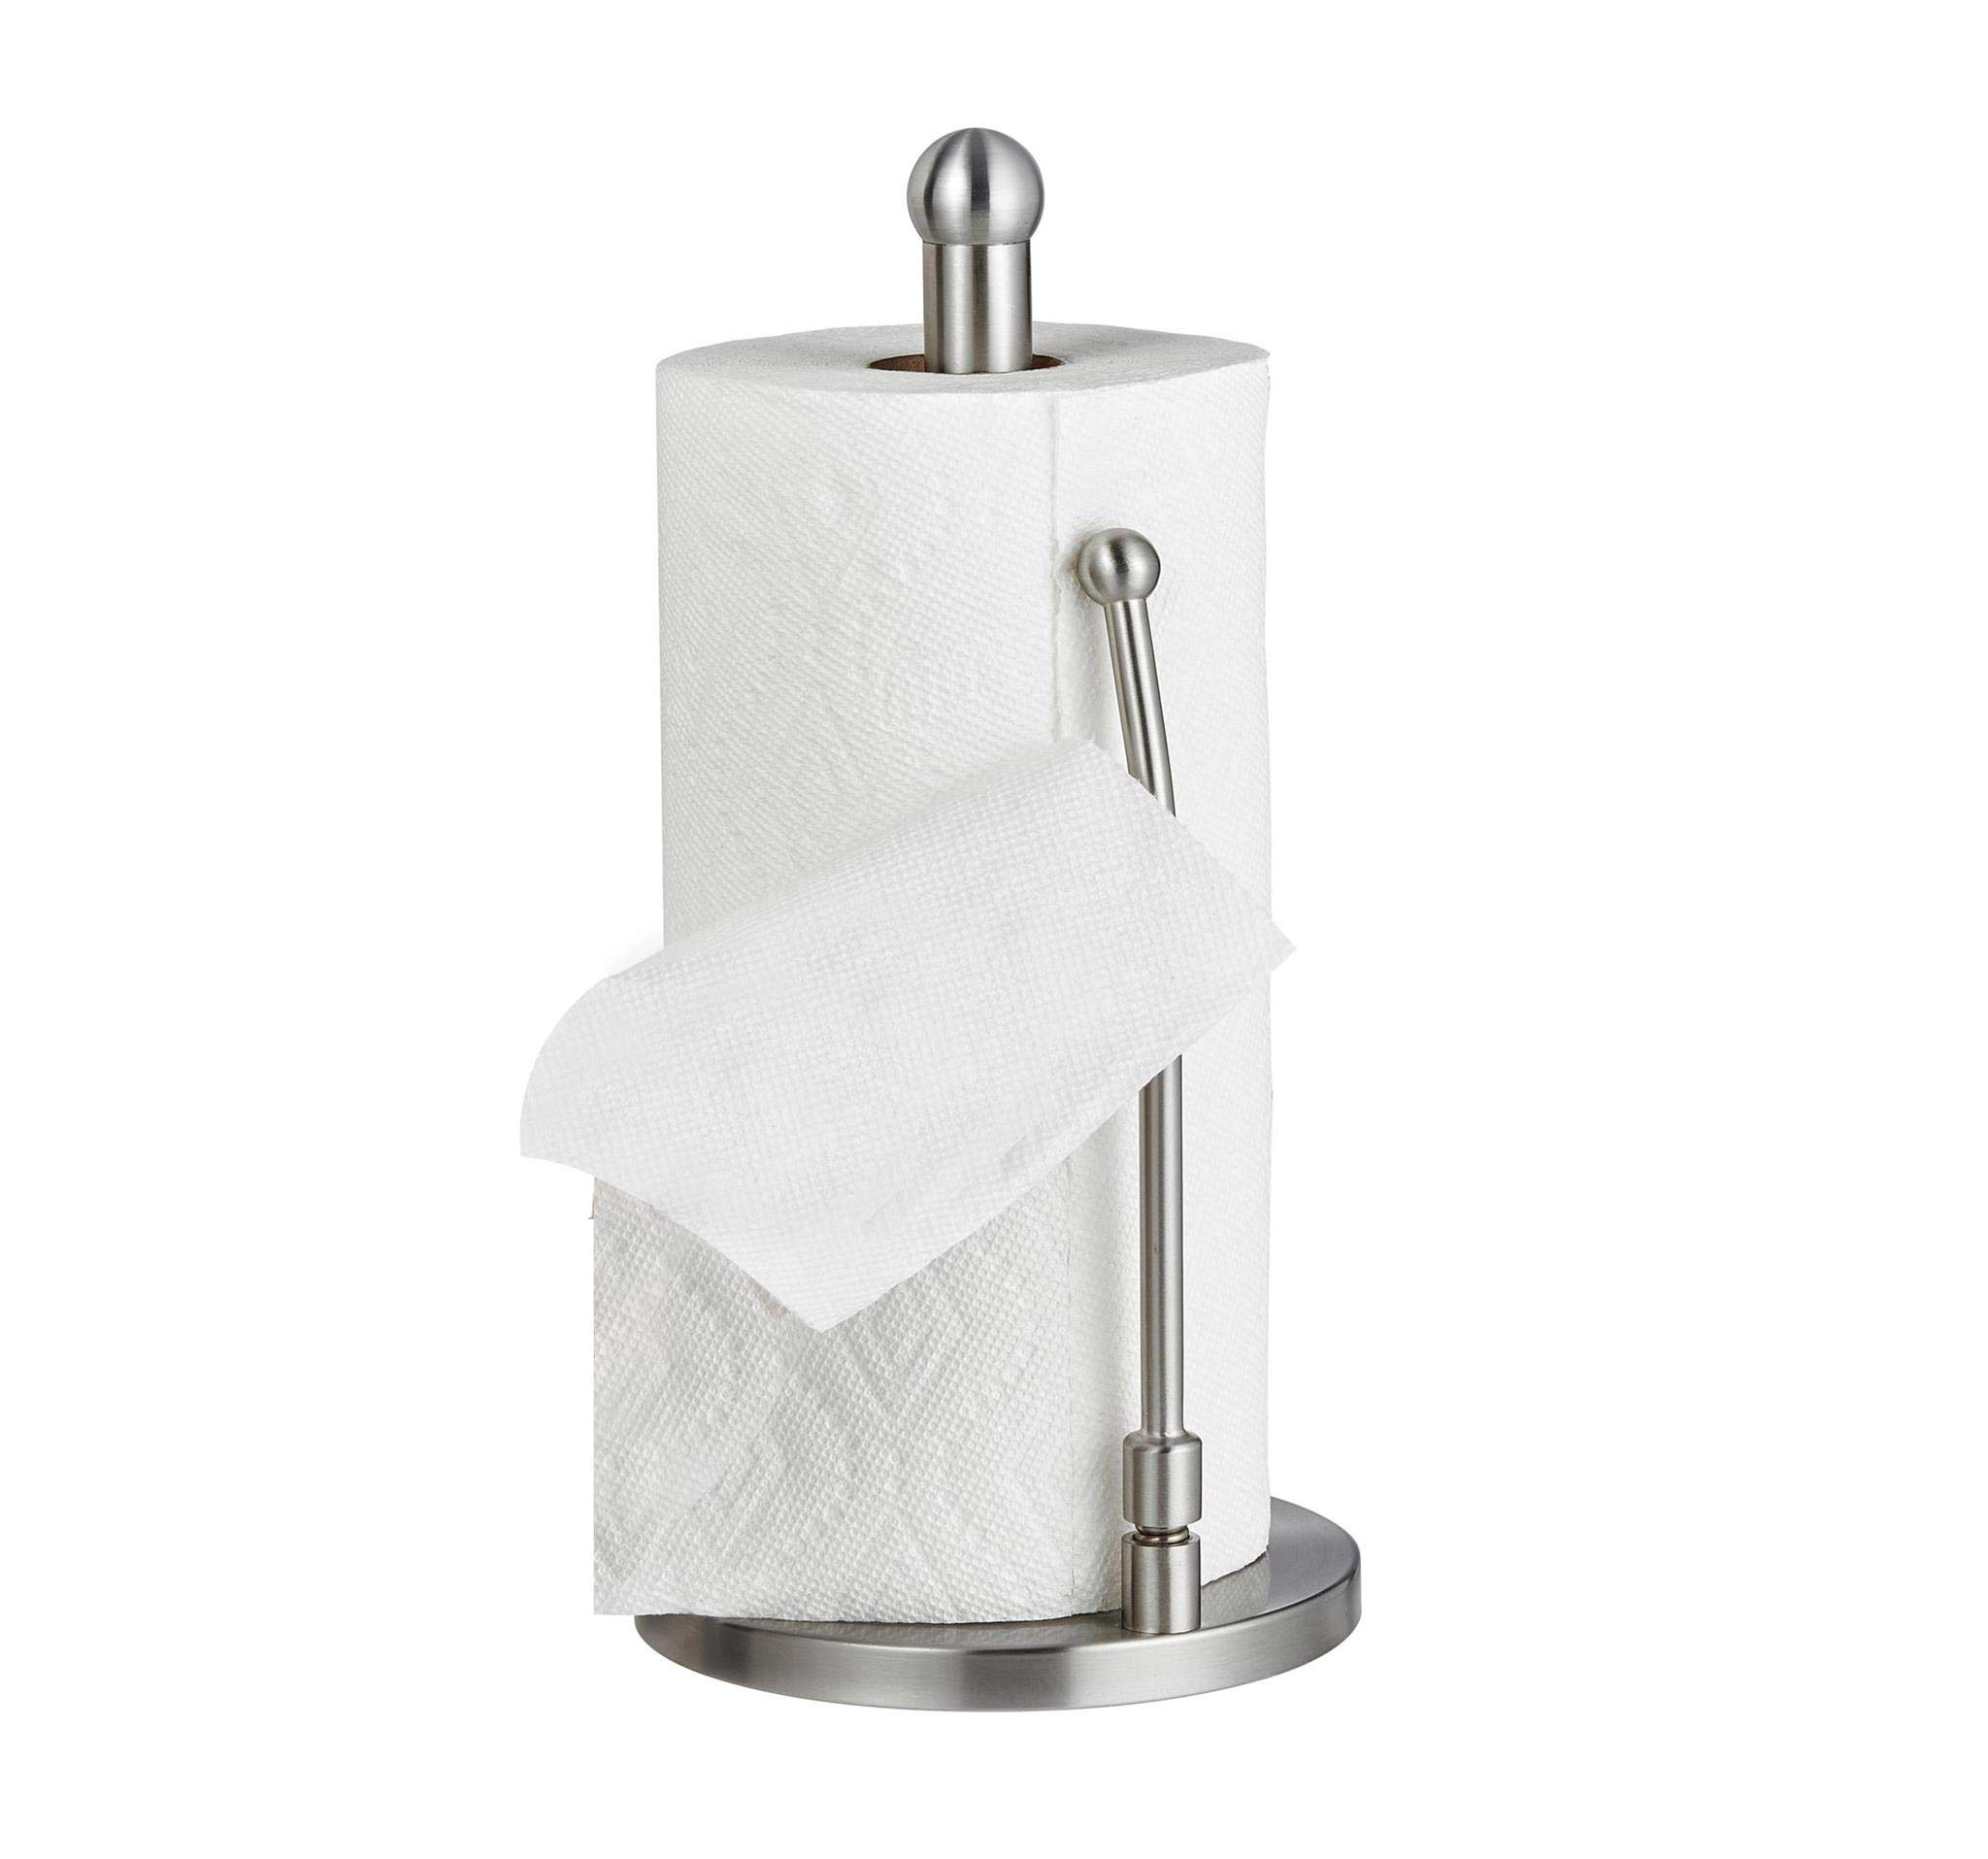 Alpine Industries Stainless Steel Paper Towel Holder Keeps Kitchens Tidy